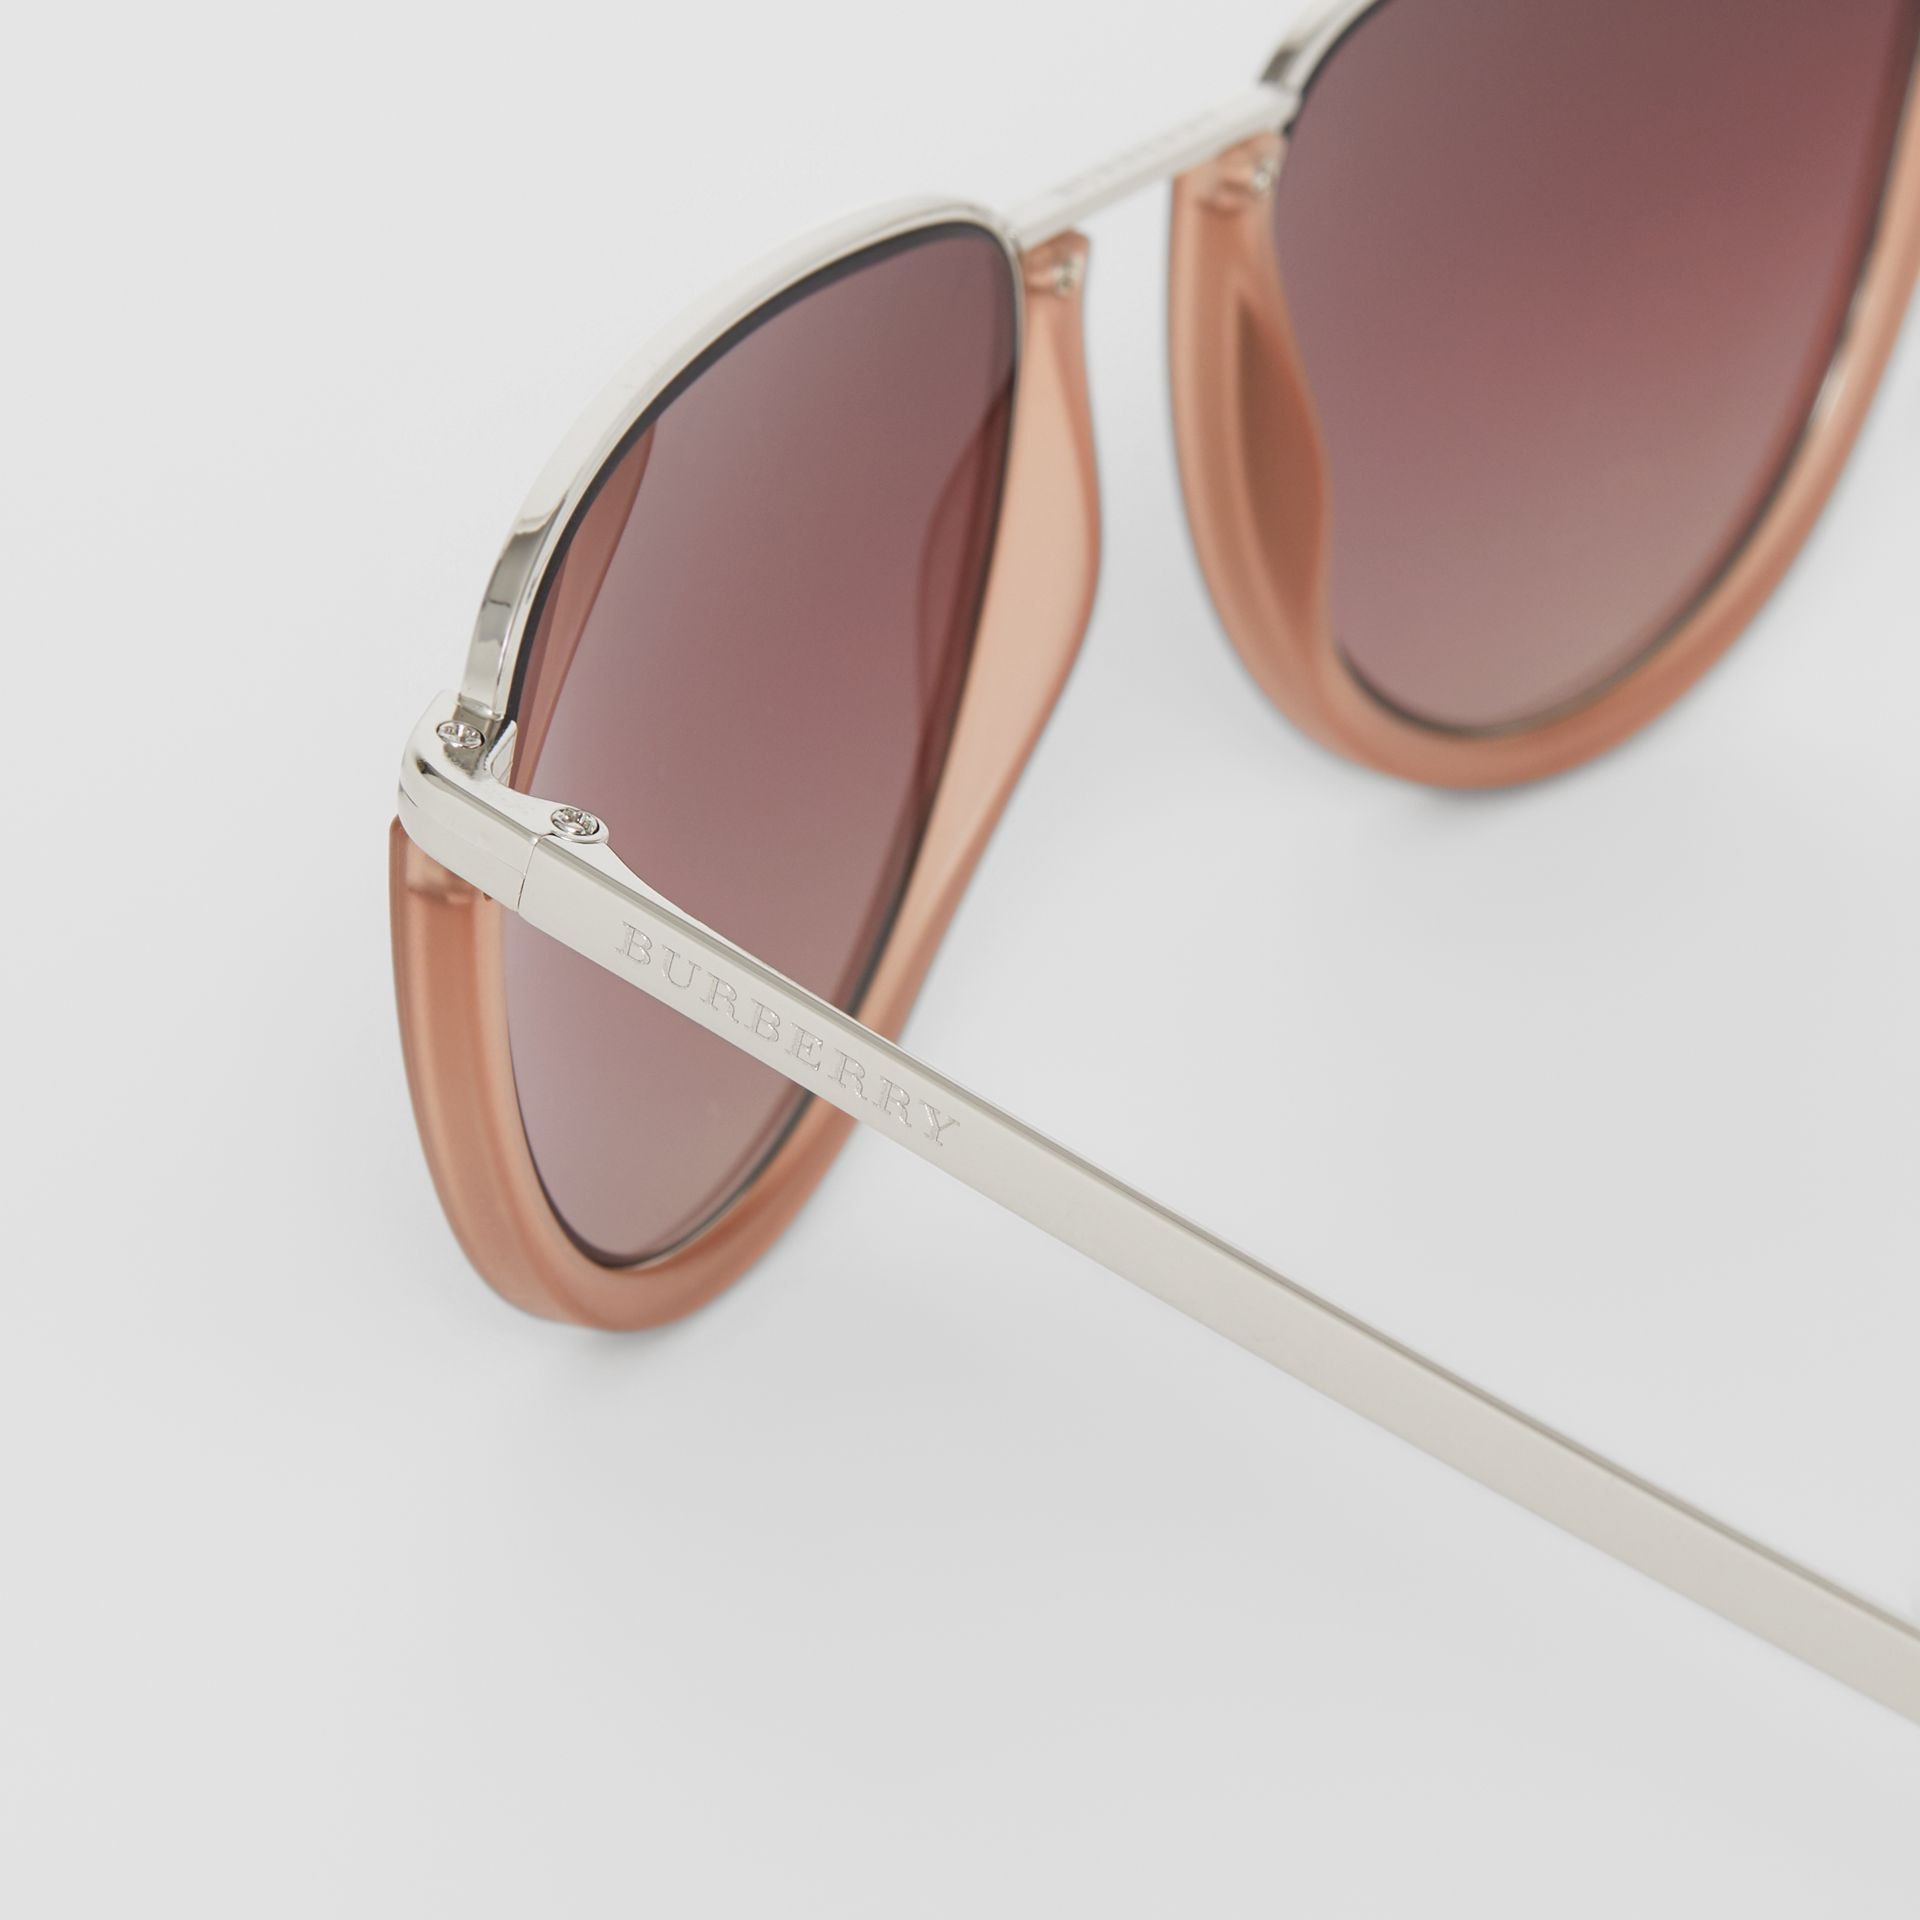 Half Moon Pilot Round Frame Sunglasses in Nude - Women | Burberry United Kingdom - gallery image 1